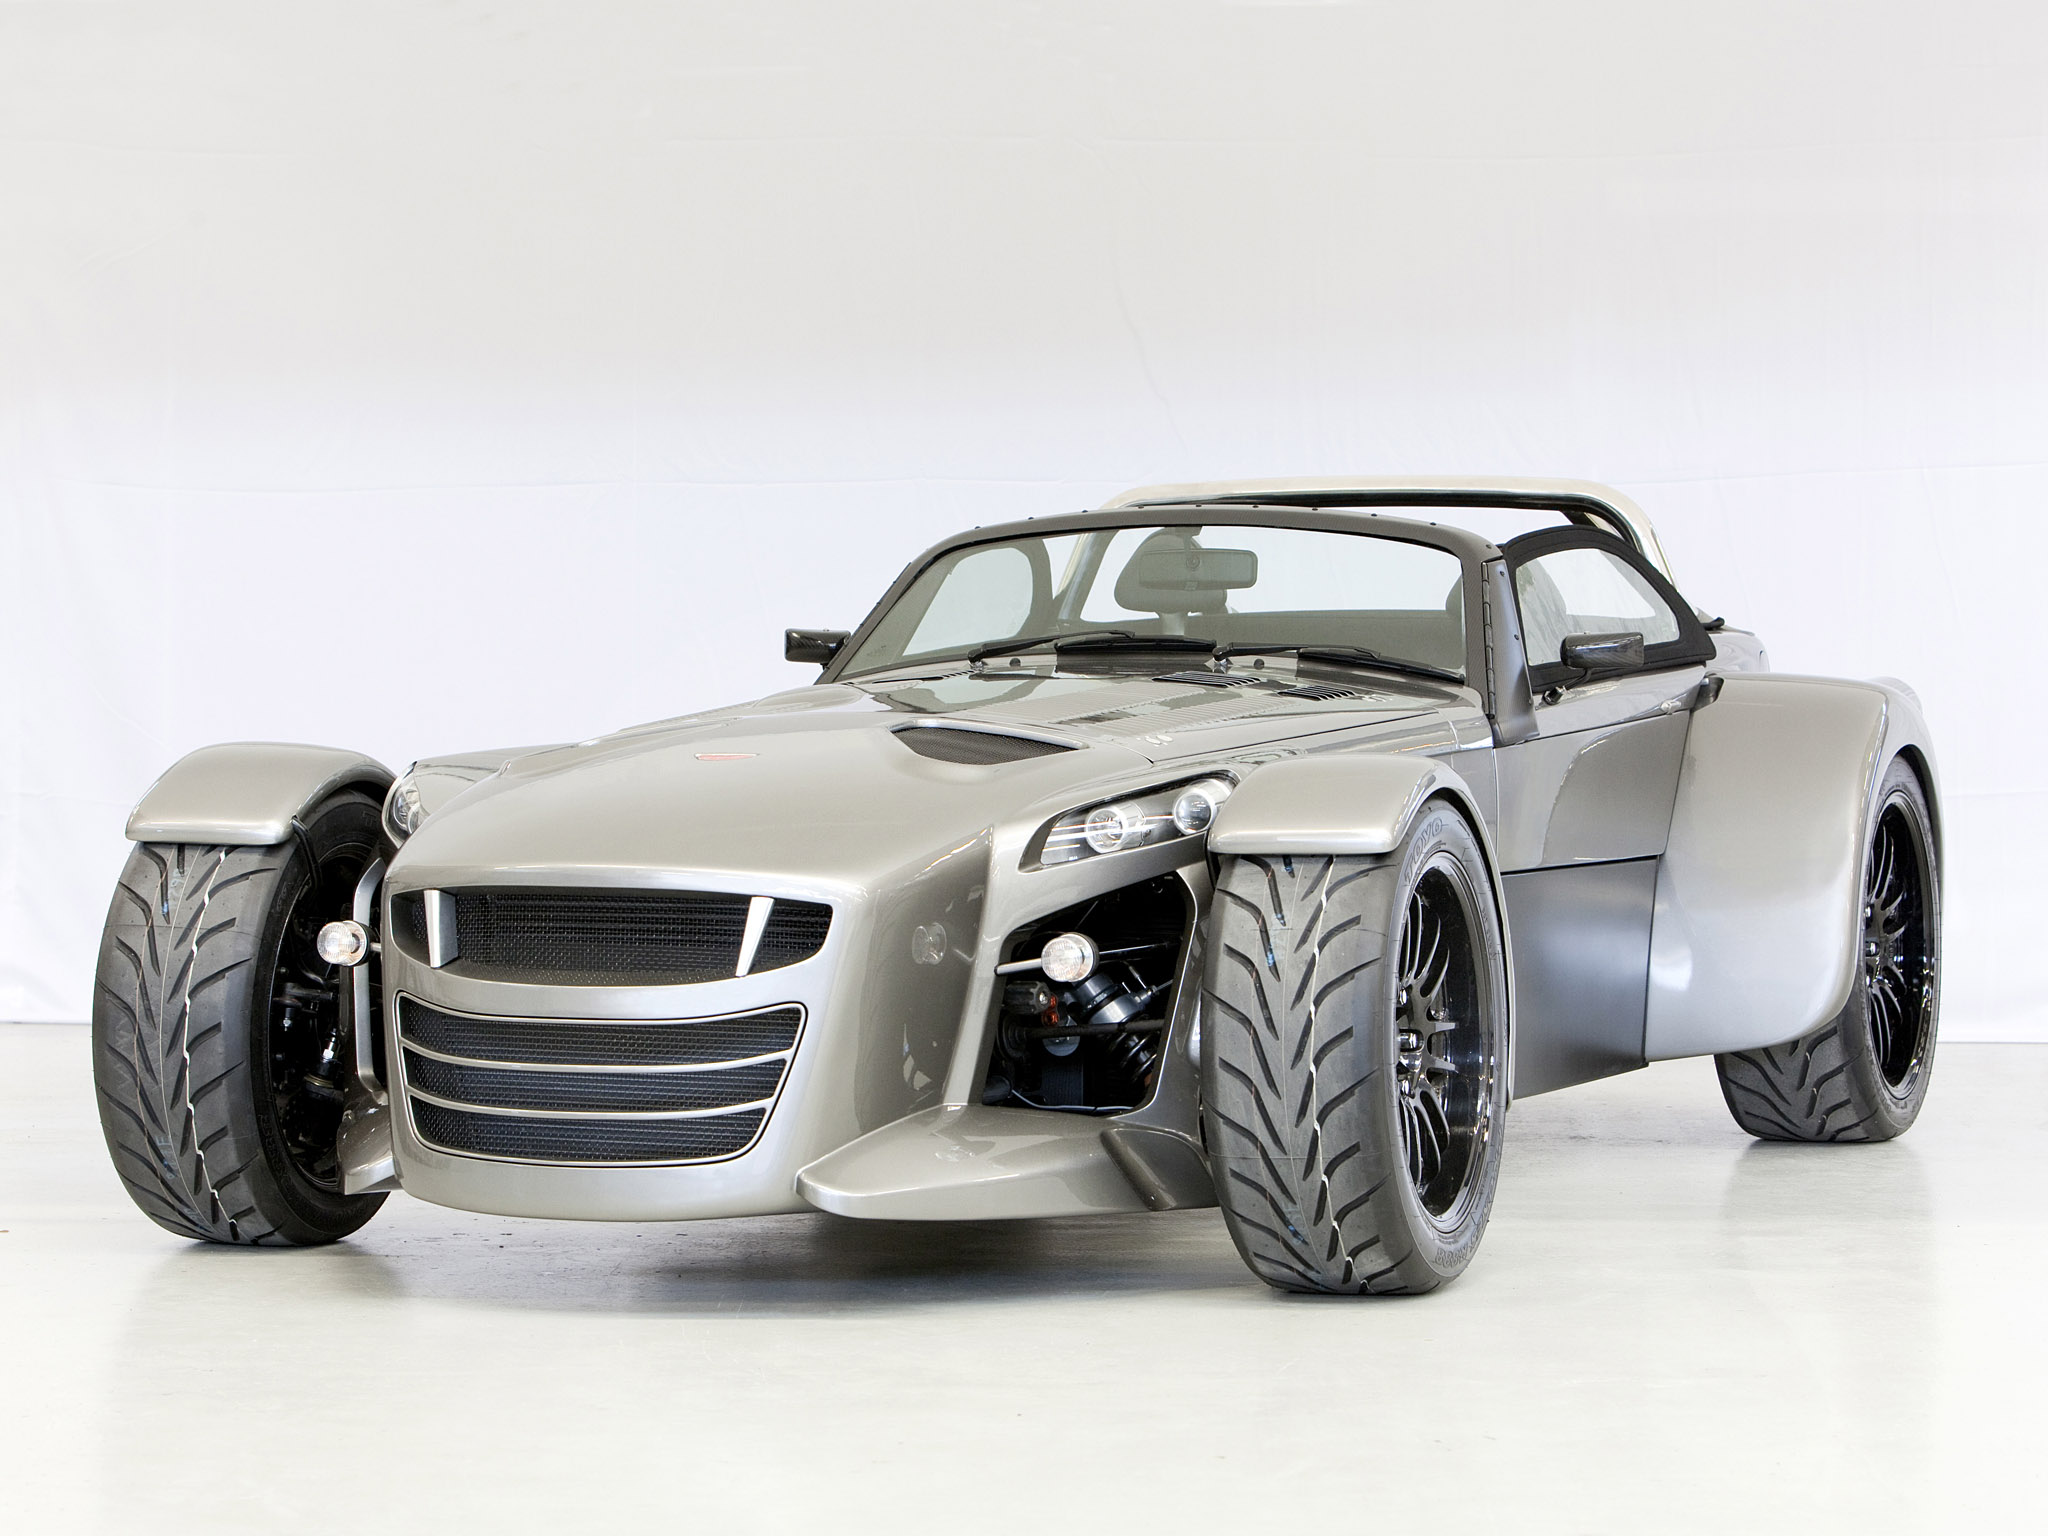 donkervoort d8 gto 2011 donkervoort d8 gto 2011 photo 04 car in pictures car photo gallery. Black Bedroom Furniture Sets. Home Design Ideas